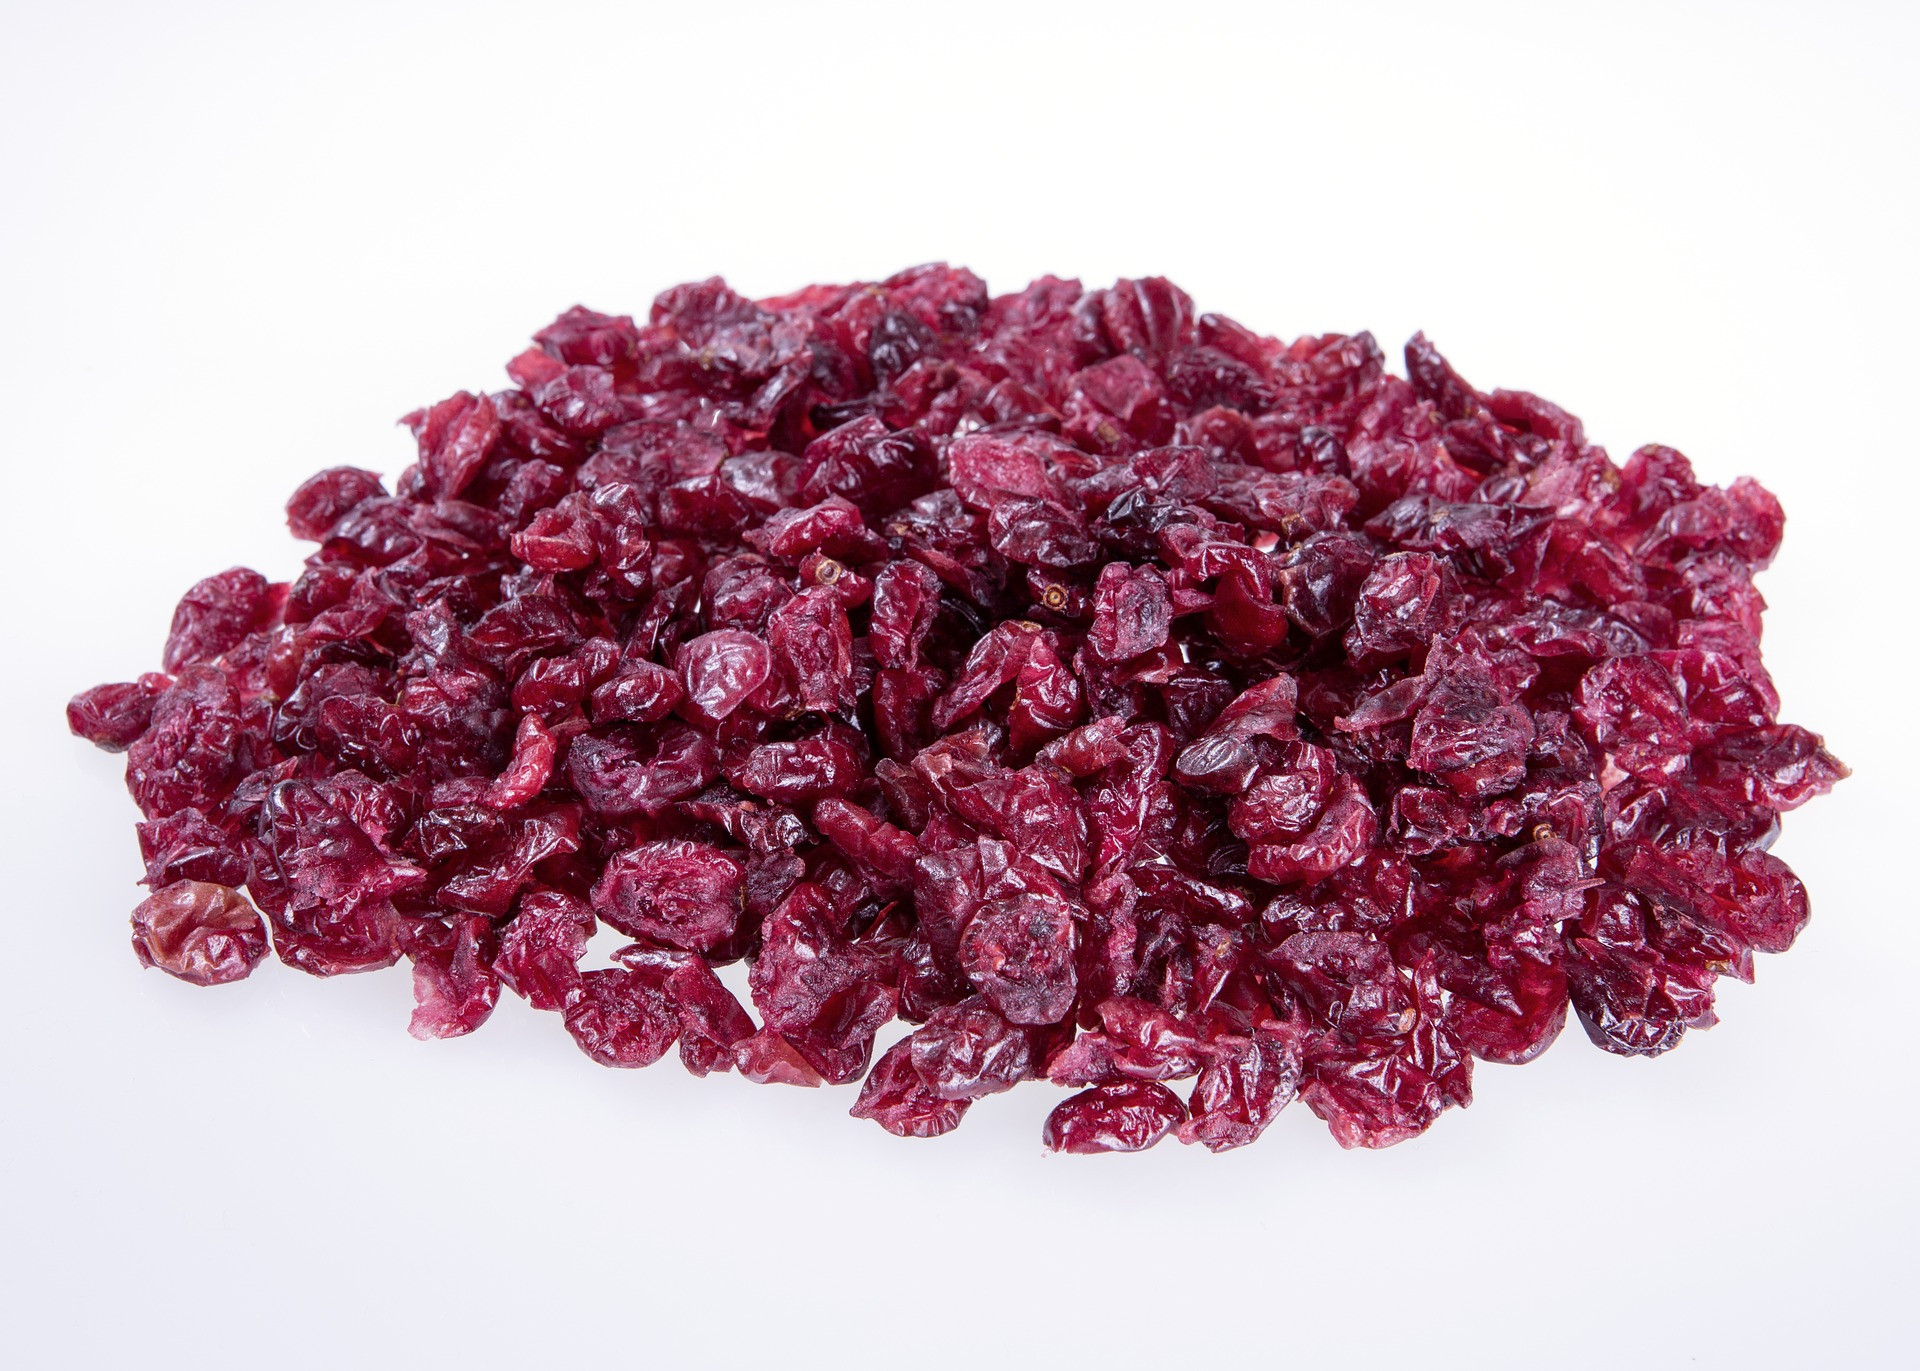 Dried Organic Cranberries